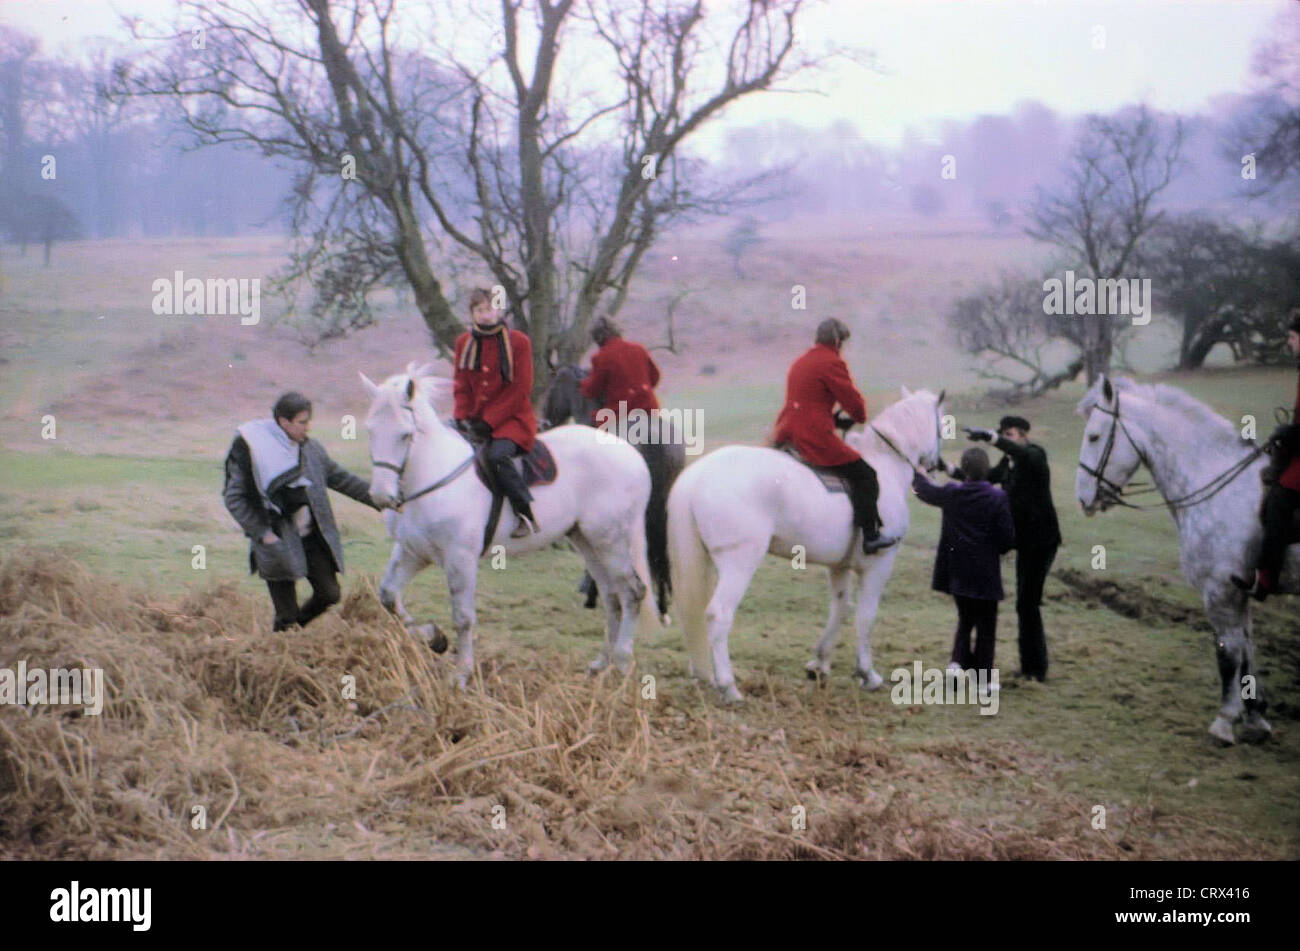 003567 - The Beatles filming Penny Lane in Knole Park, Sevenoaks on 7th February 1967 - Stock Image